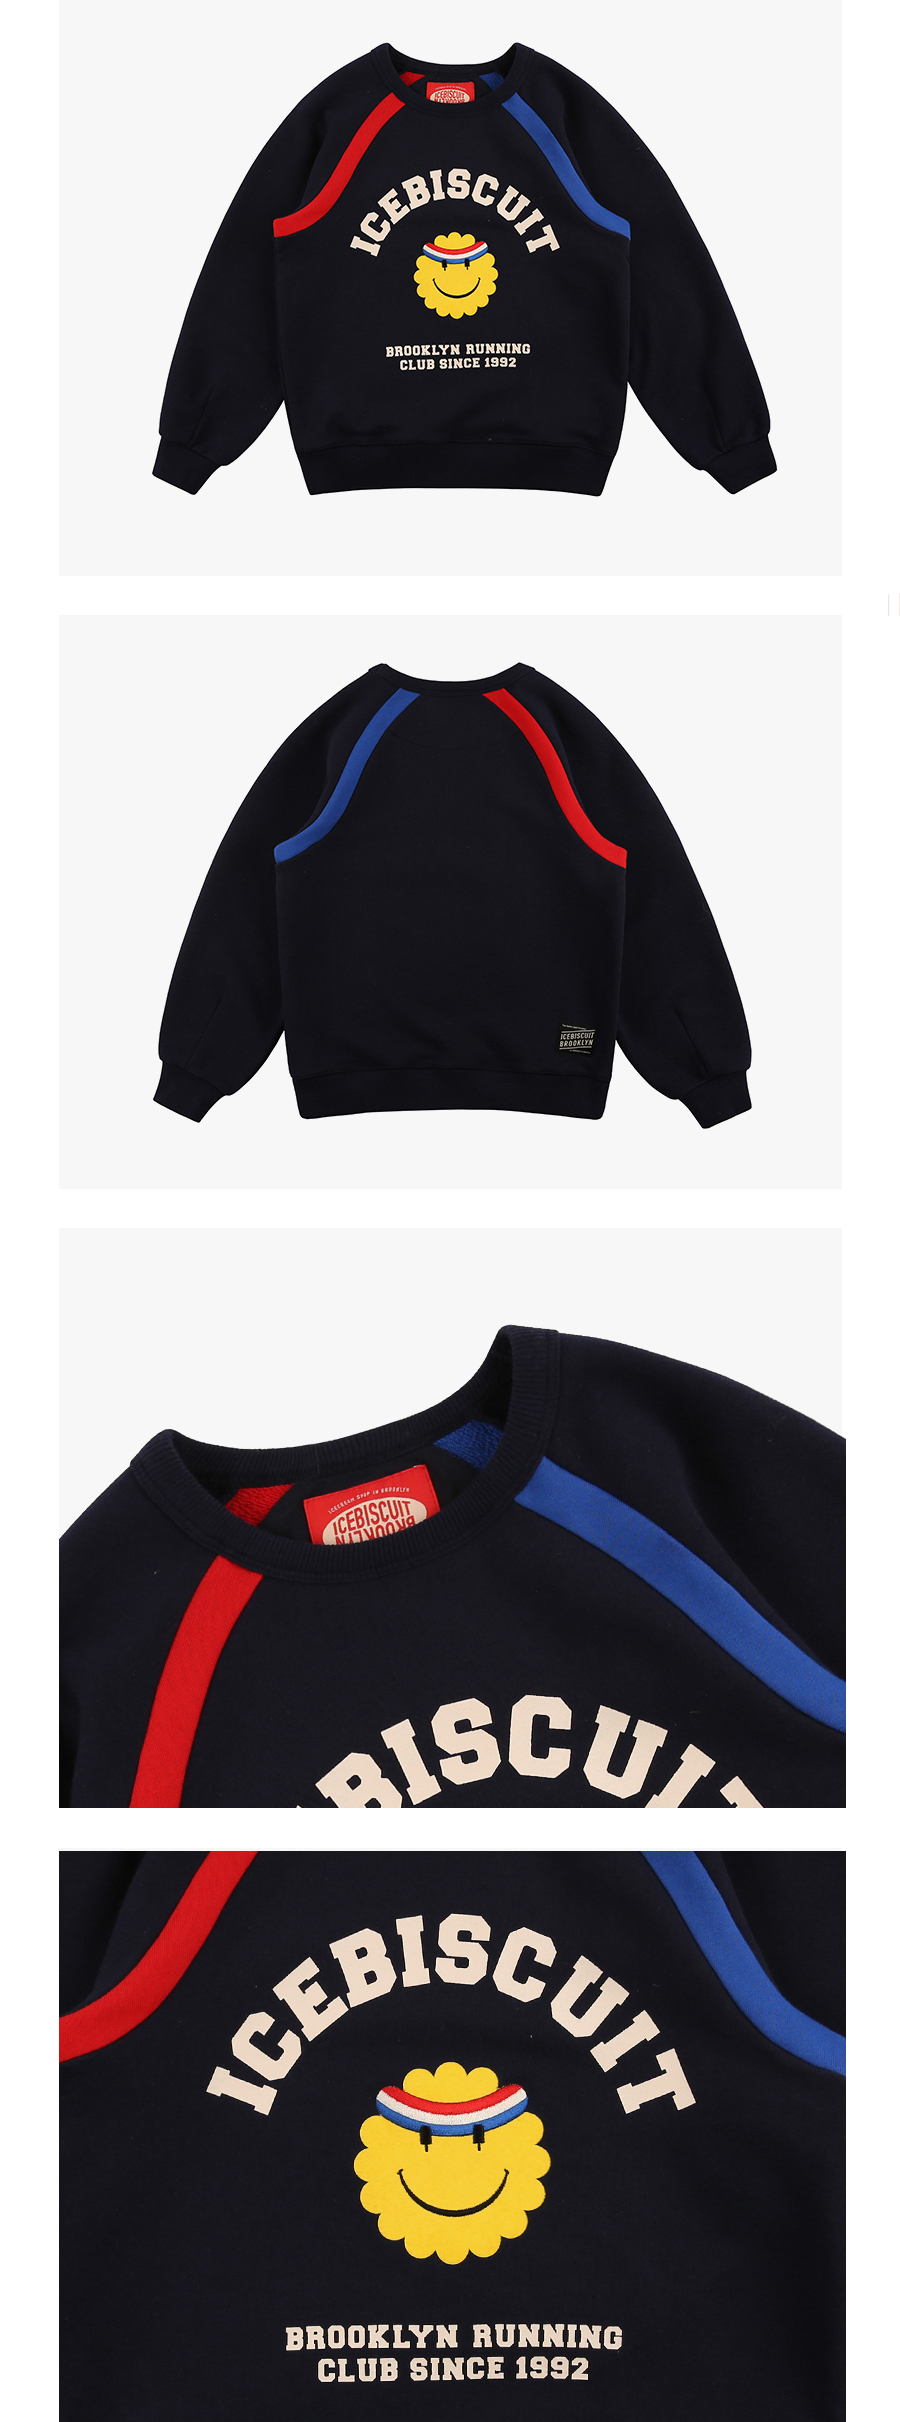 Brooklyn running club color block sweatshirt 상세 이미지